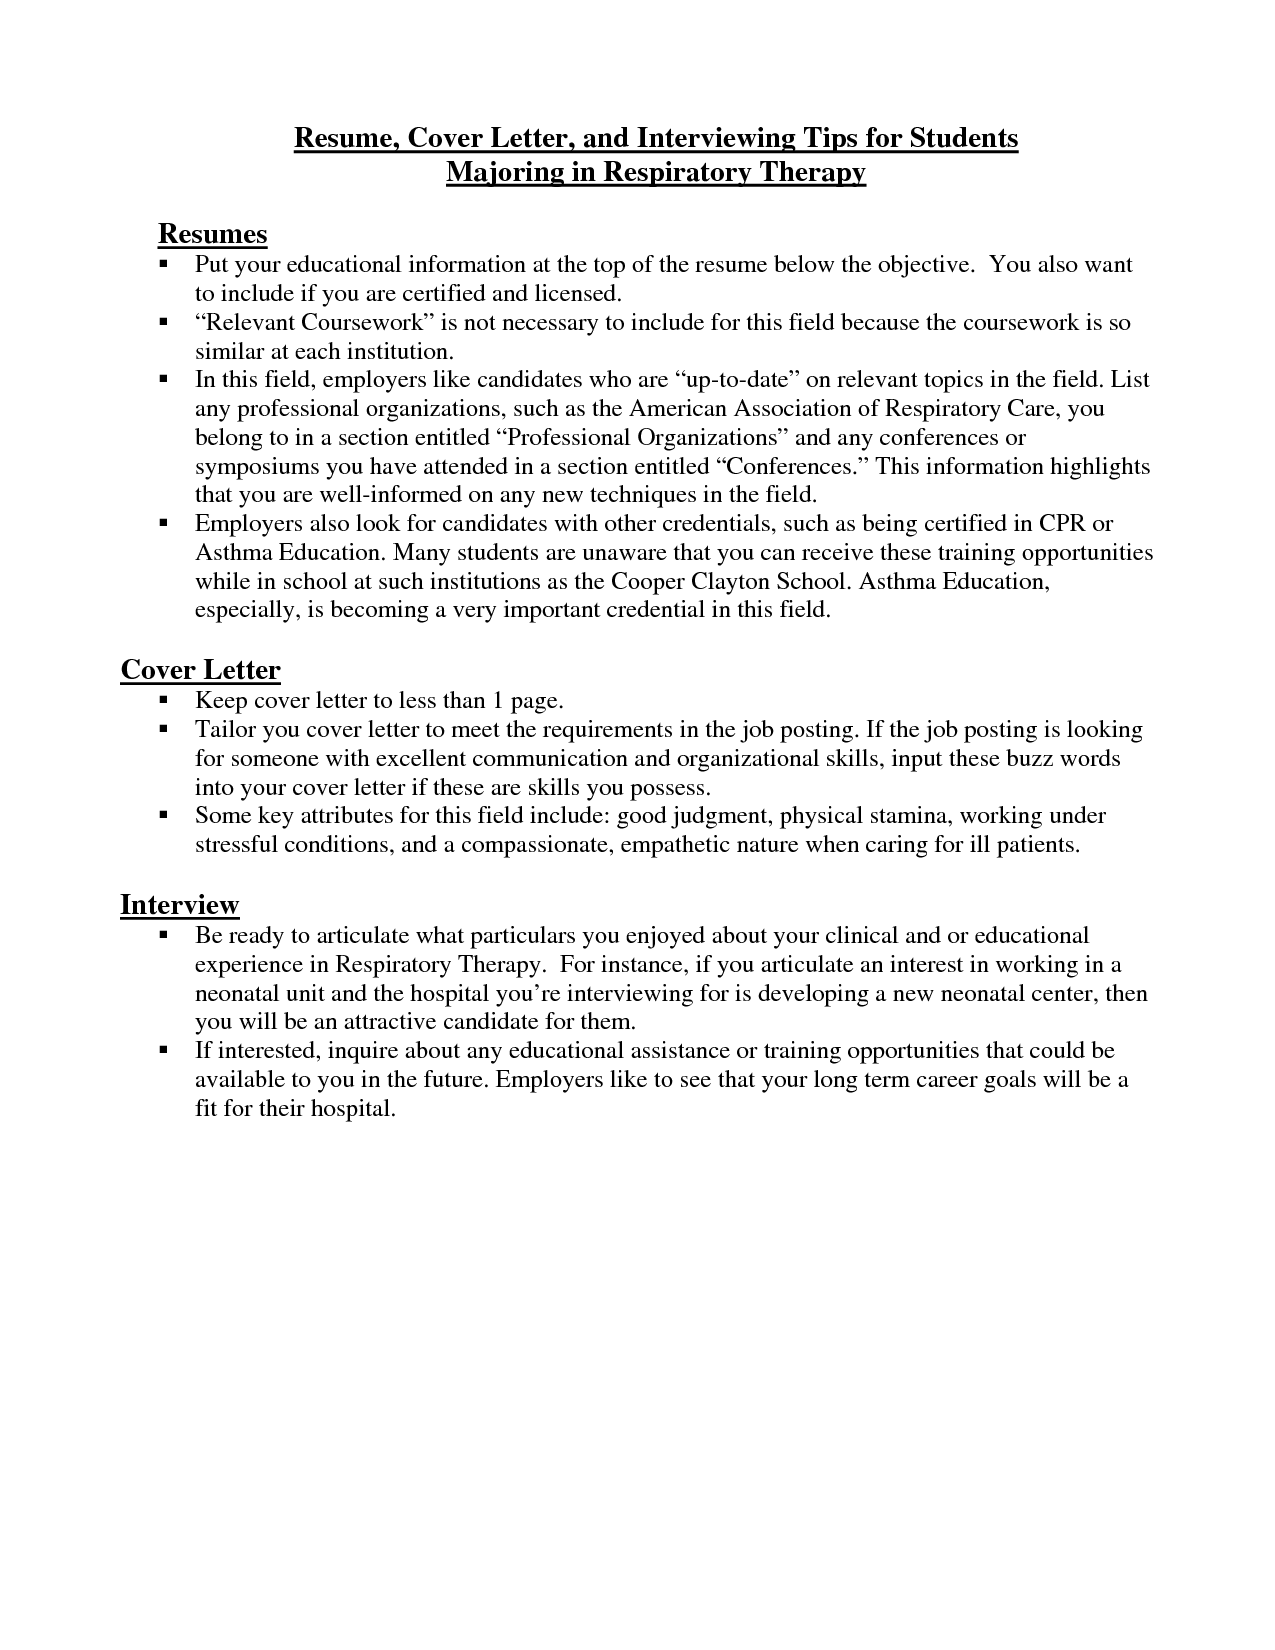 purpose of a resume cover letters